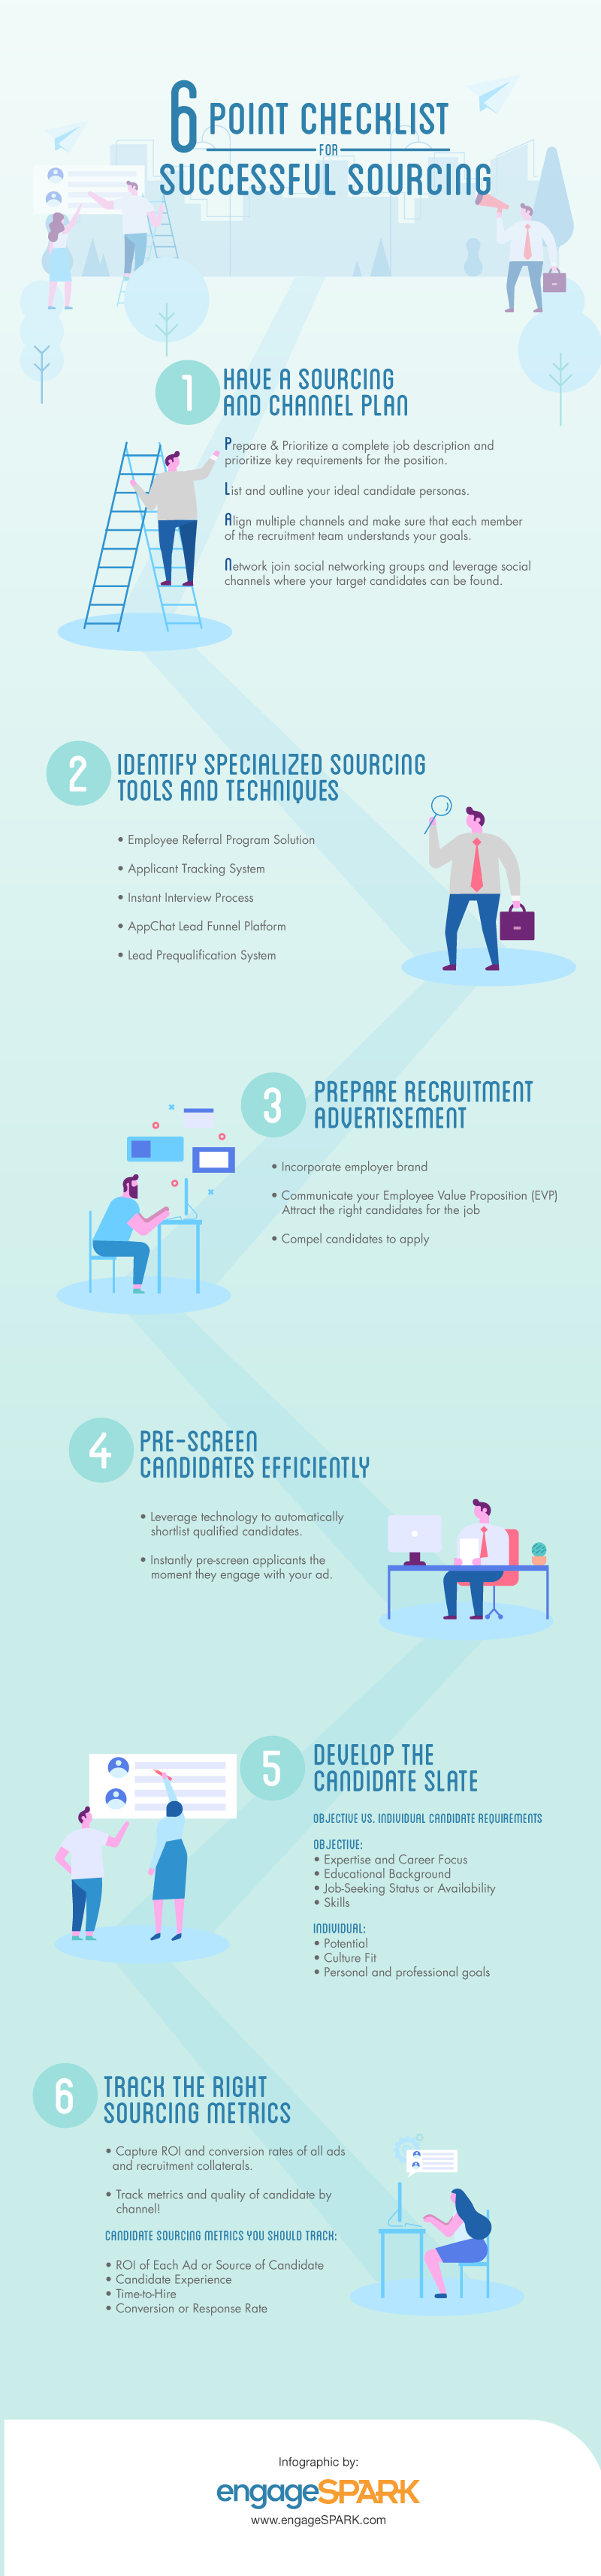 6-Point Checklist for Successful Sourcing (With Infographic) - engageSPARK